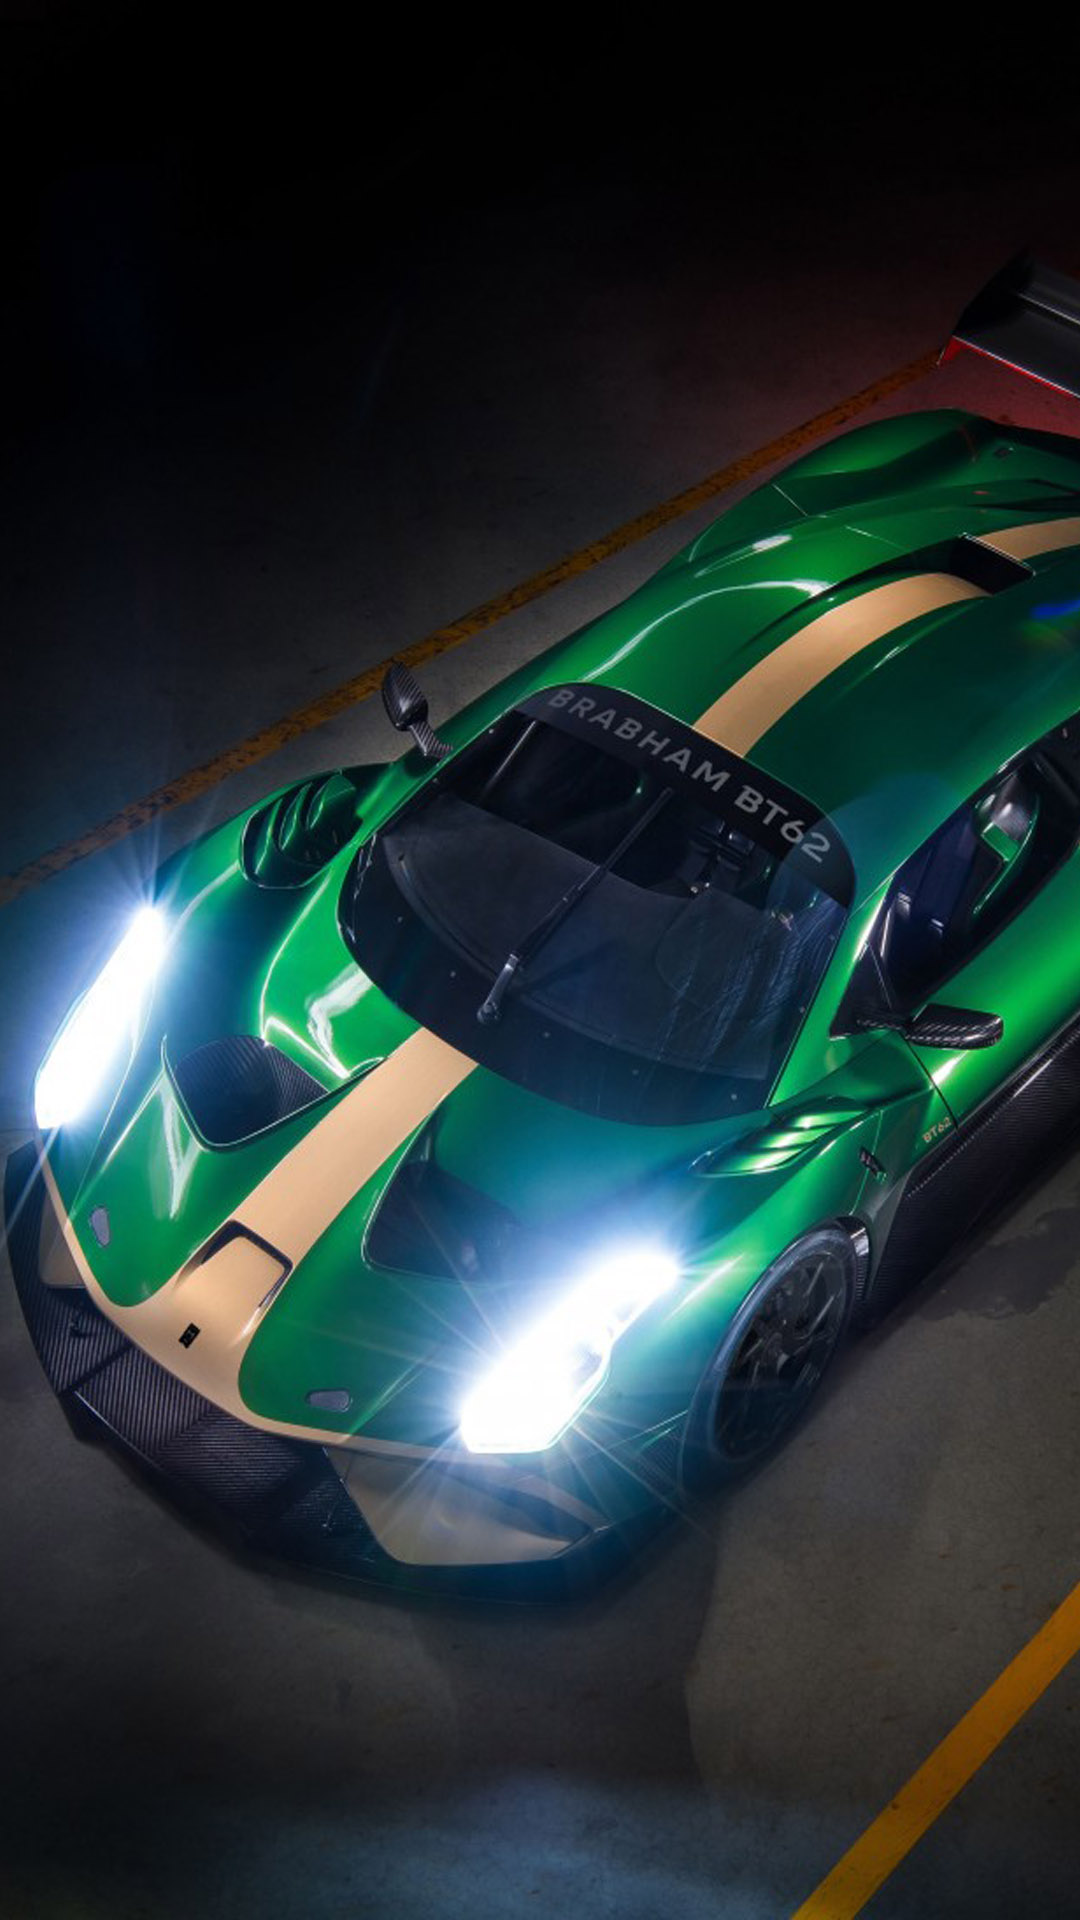 Download Green Brabham Bt62 Supercar Free Pure 4k Ultra Hd Mobile